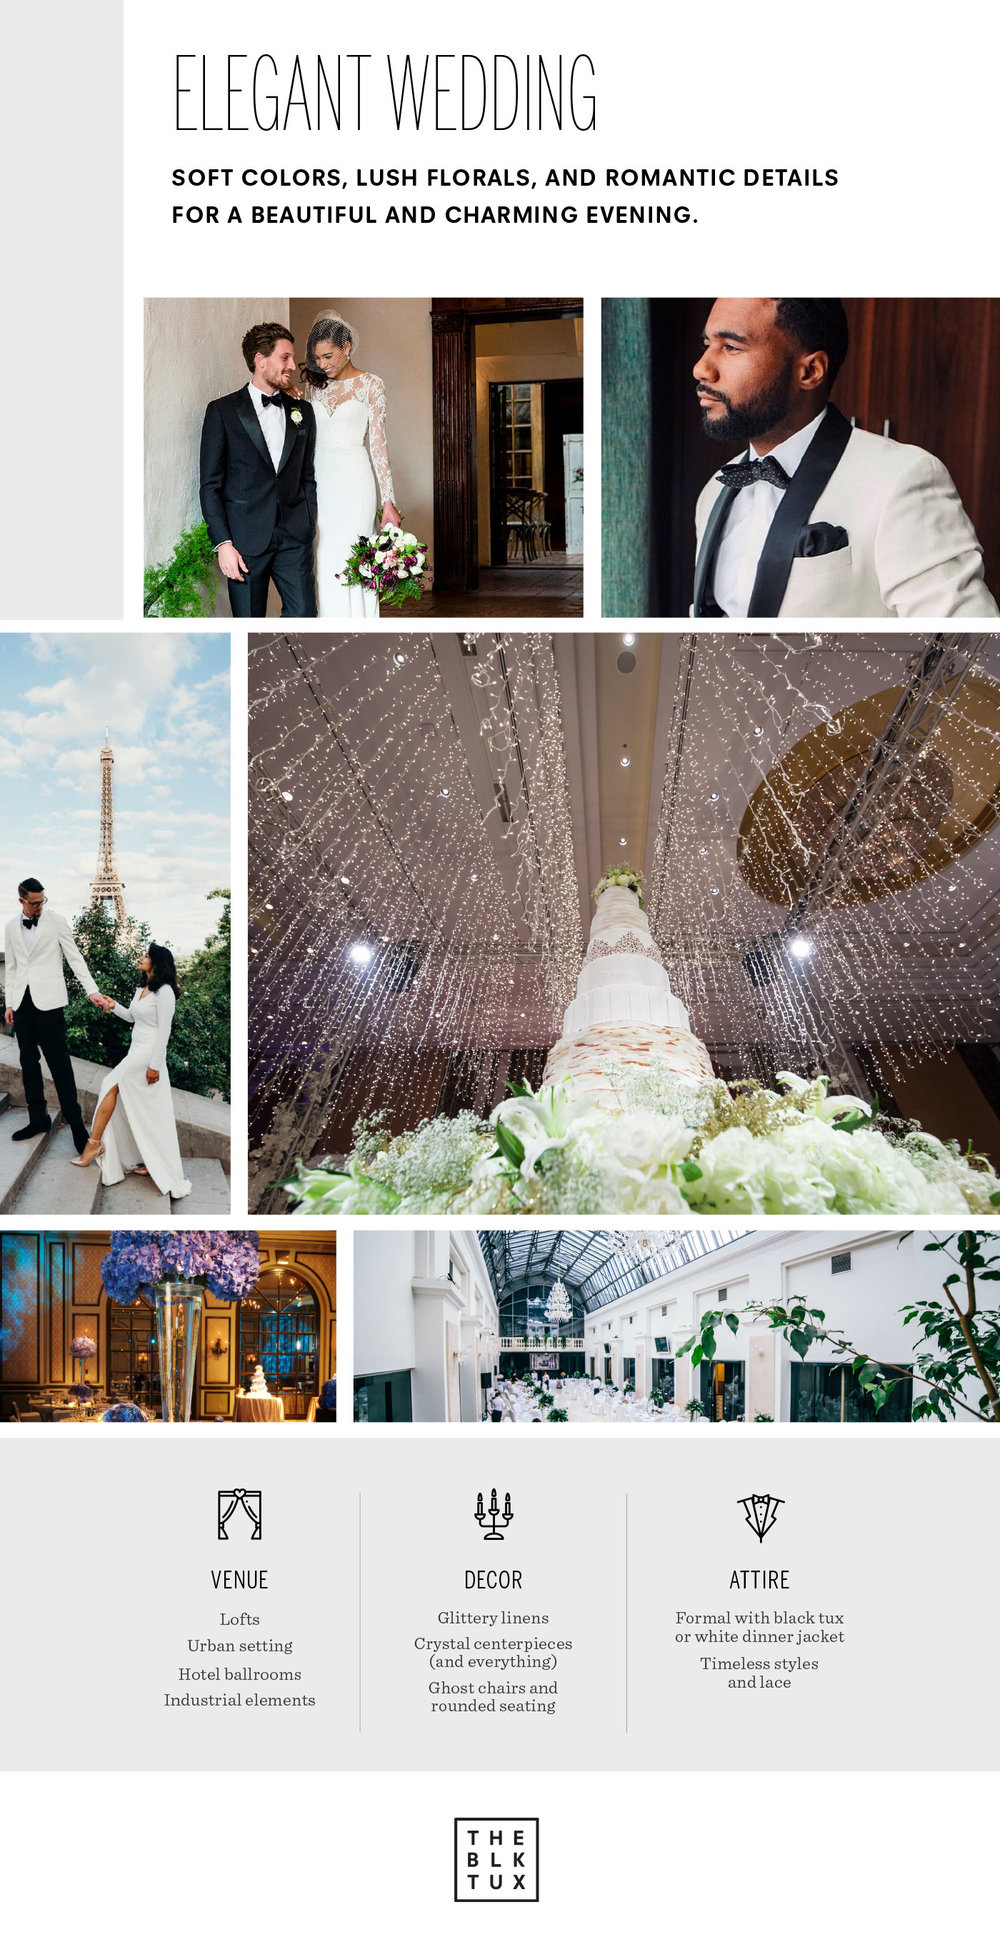 blktux_wedding_theme_trends_fall17_elegant_v06@2x.jpg